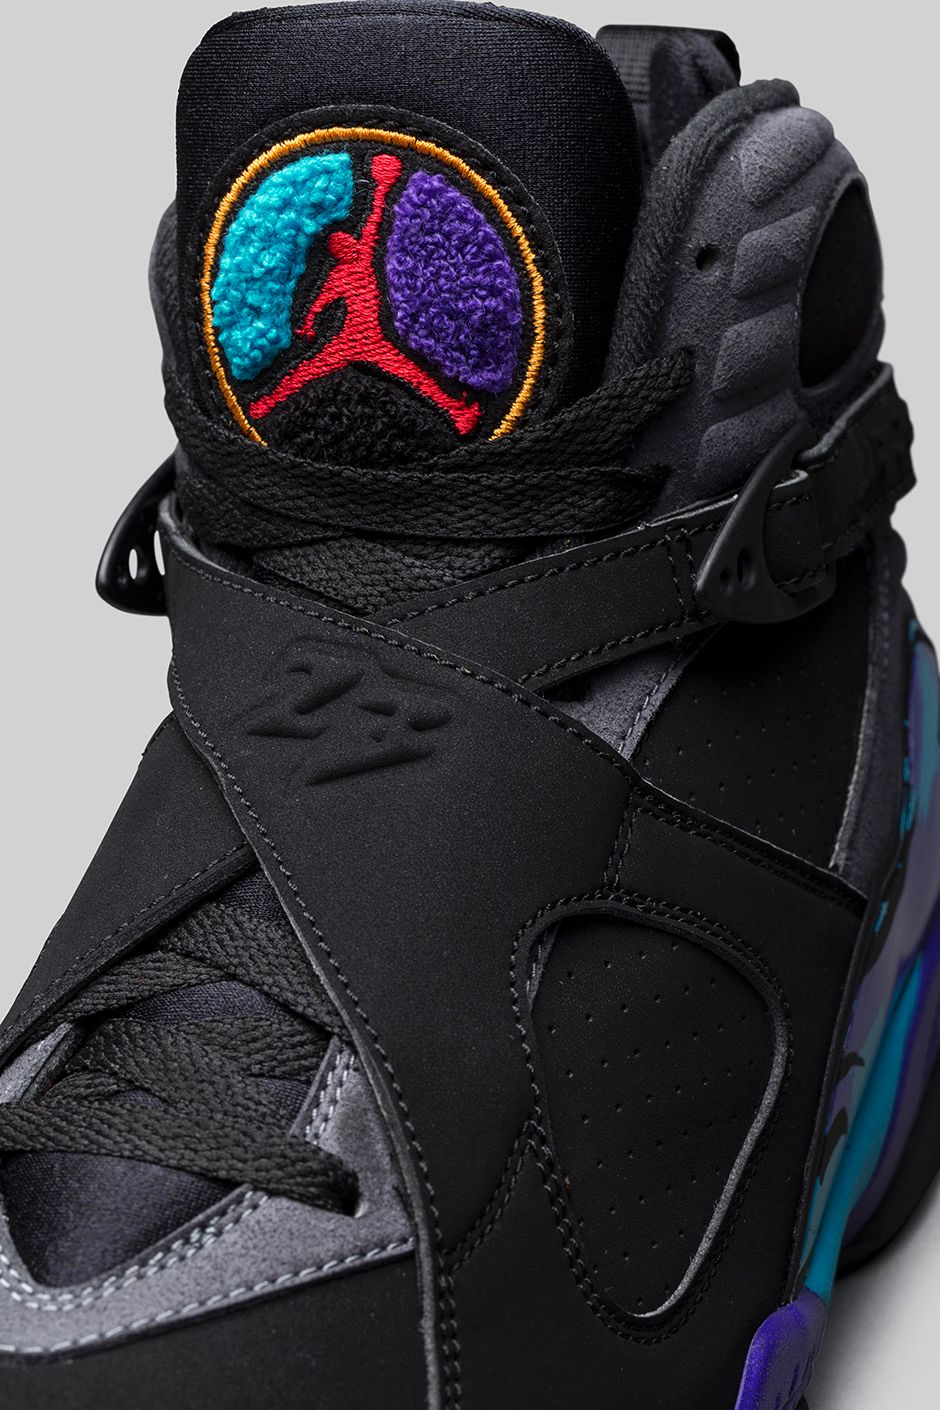 91eebead090c97 Where to Cop the Air Jordan 8 Retro  Aqua  - WearTesters